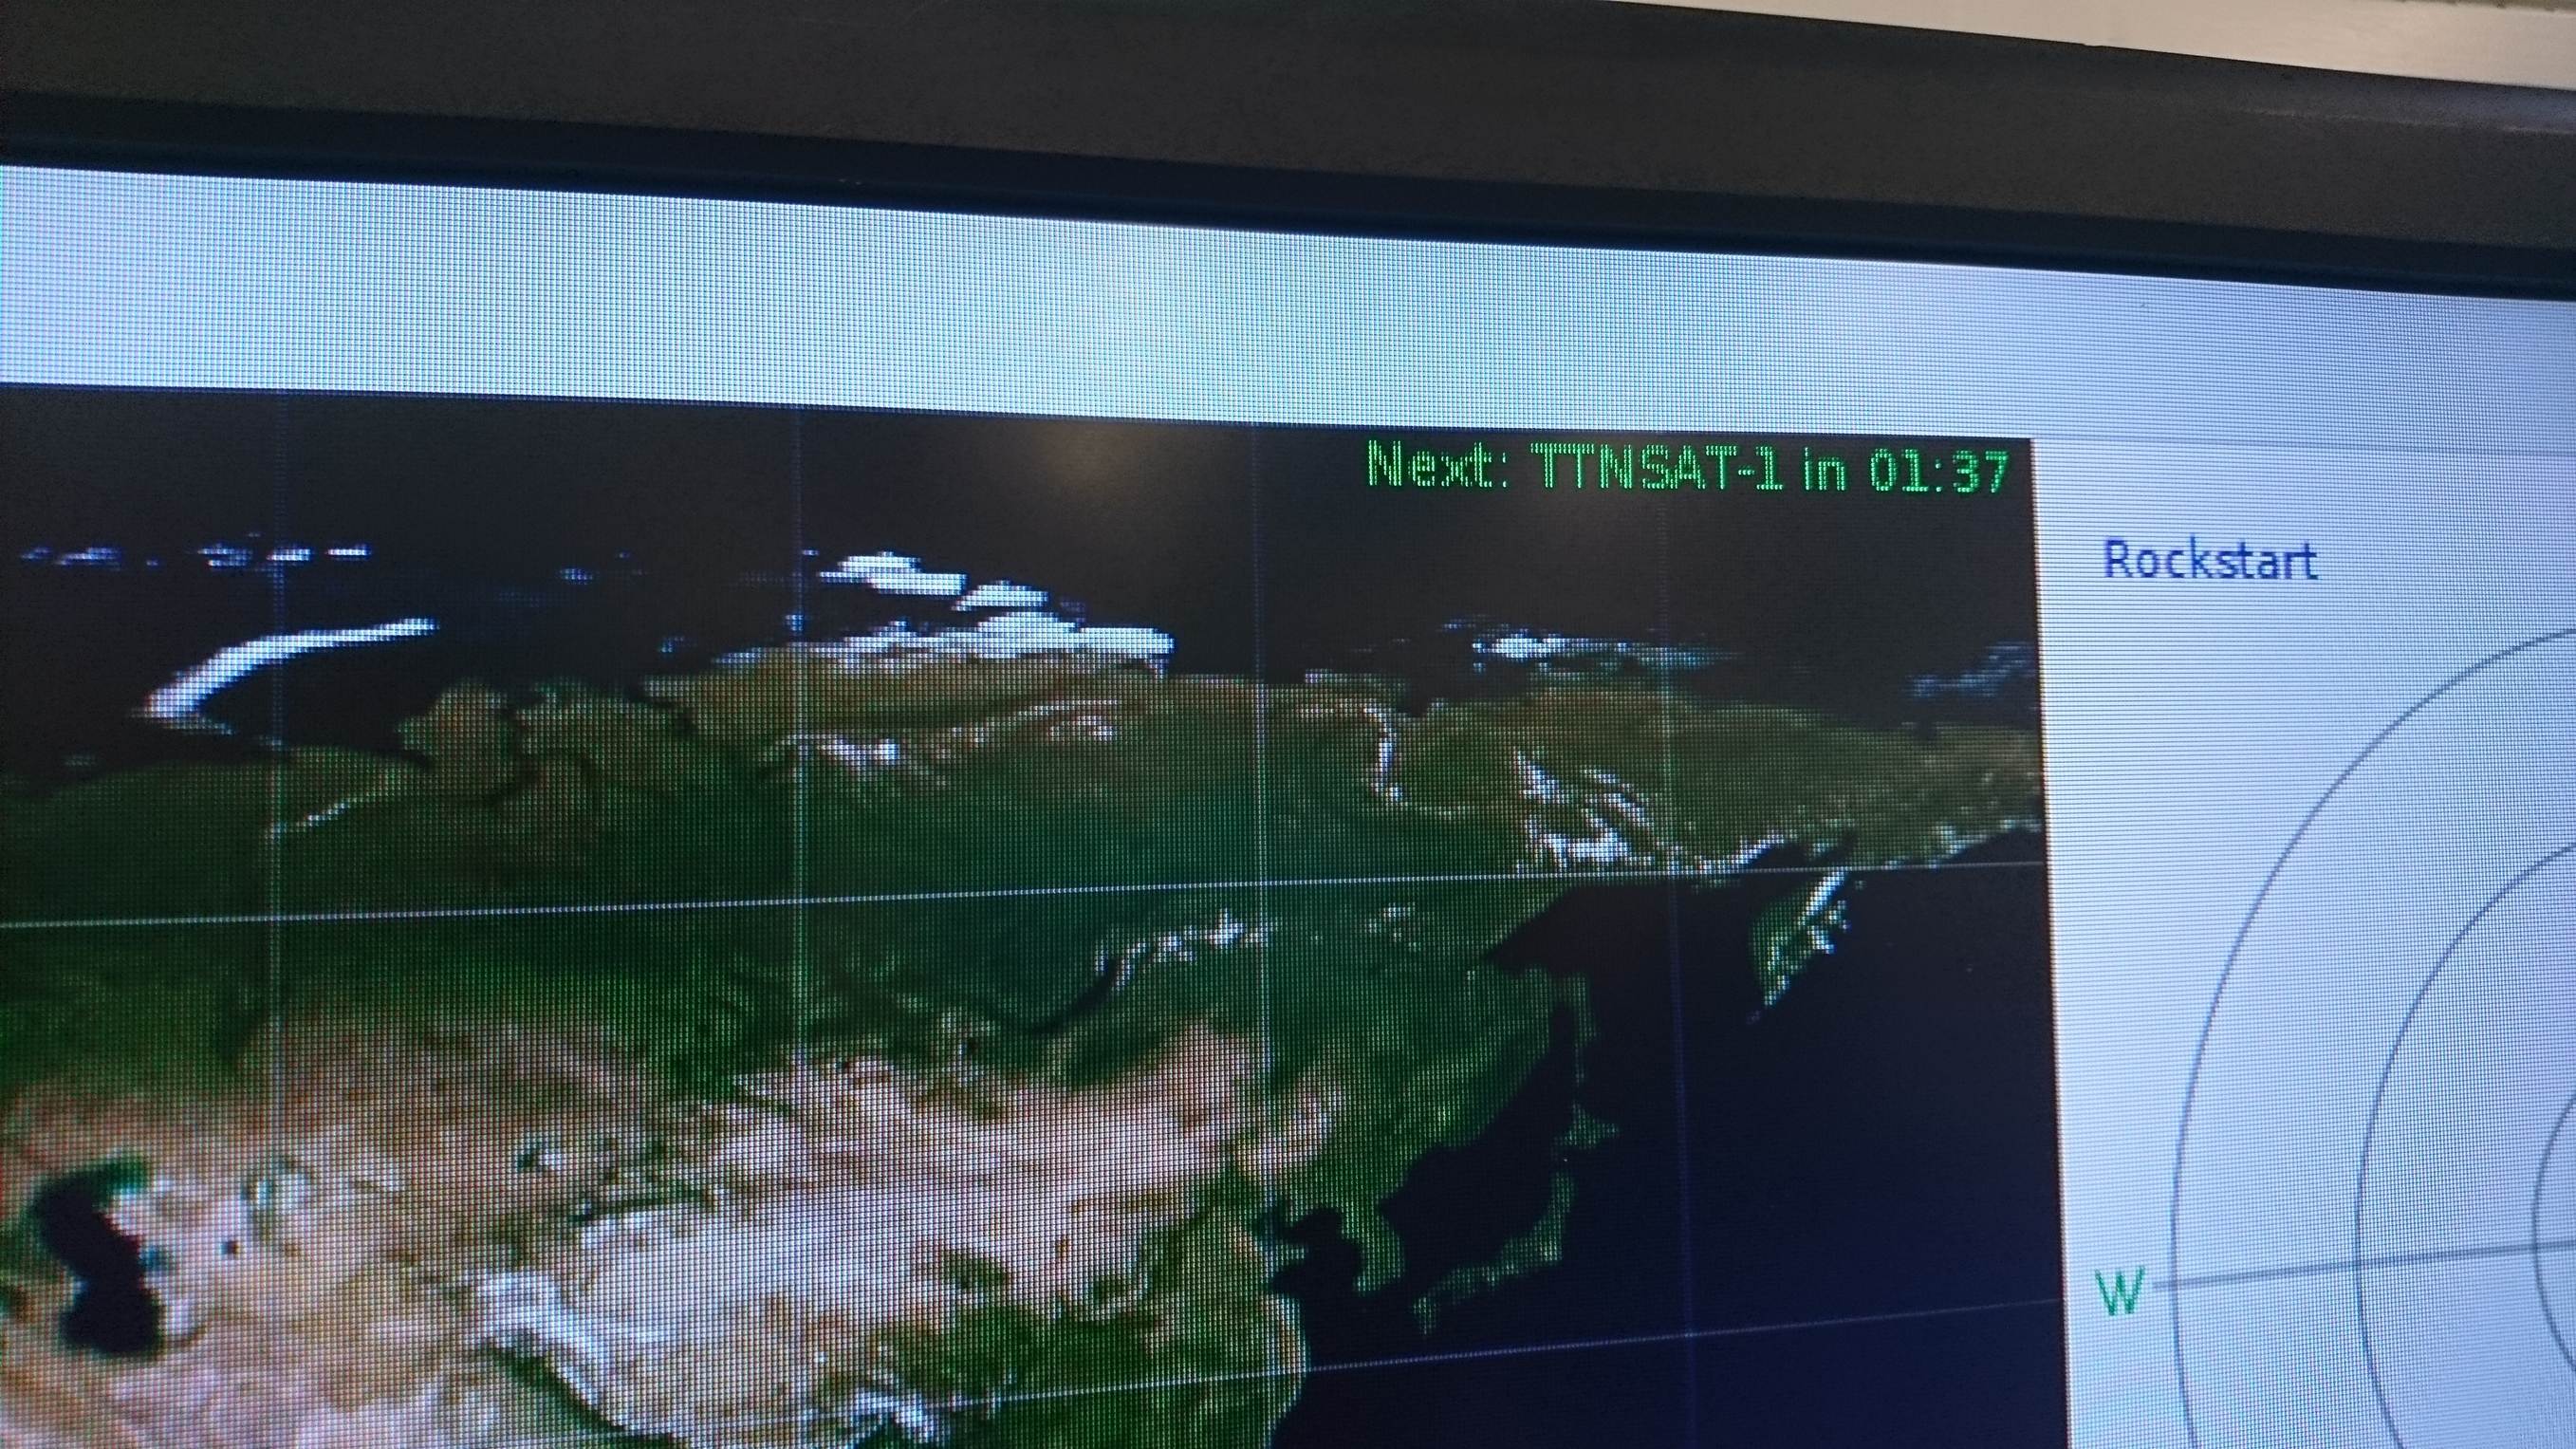 LoRa transmission from low orbit satellite during The Things